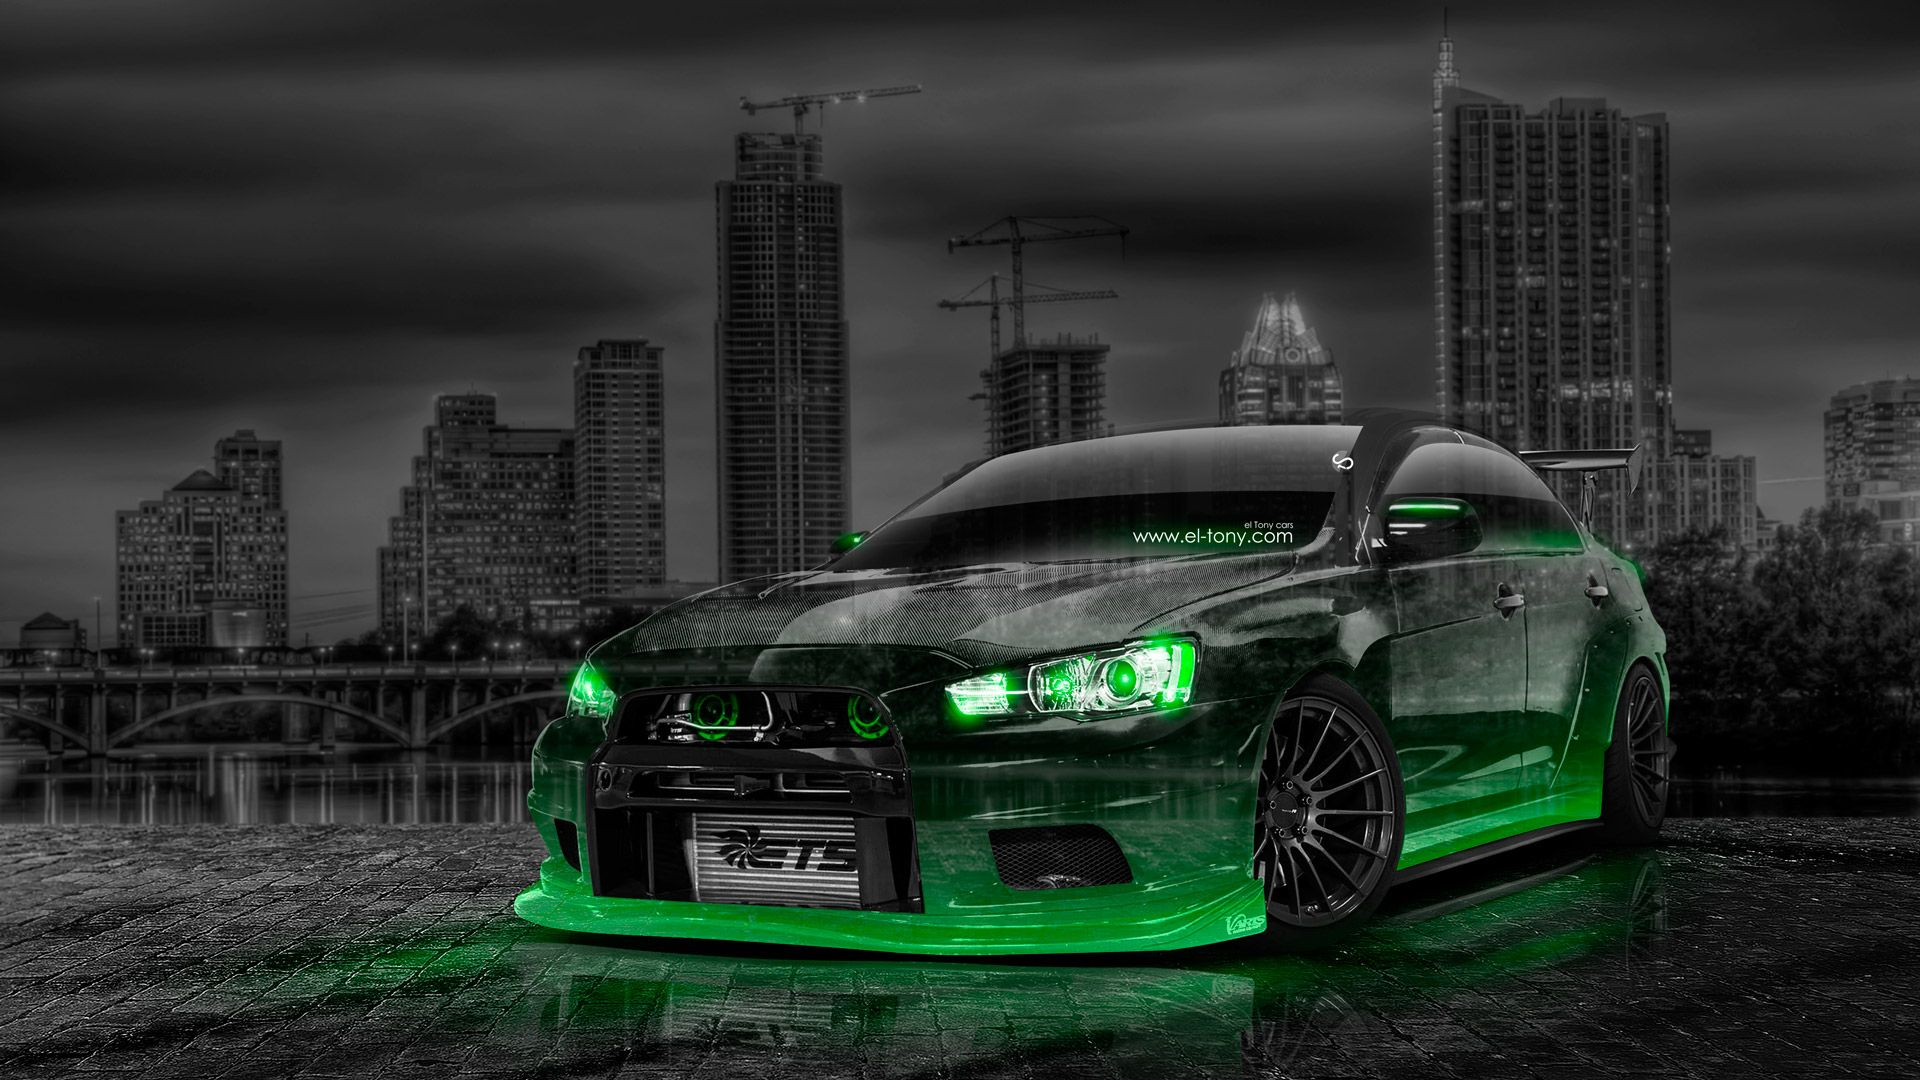 Etonnant Mitsubishi Lancer Evolution X Tuning JDM Crystal City